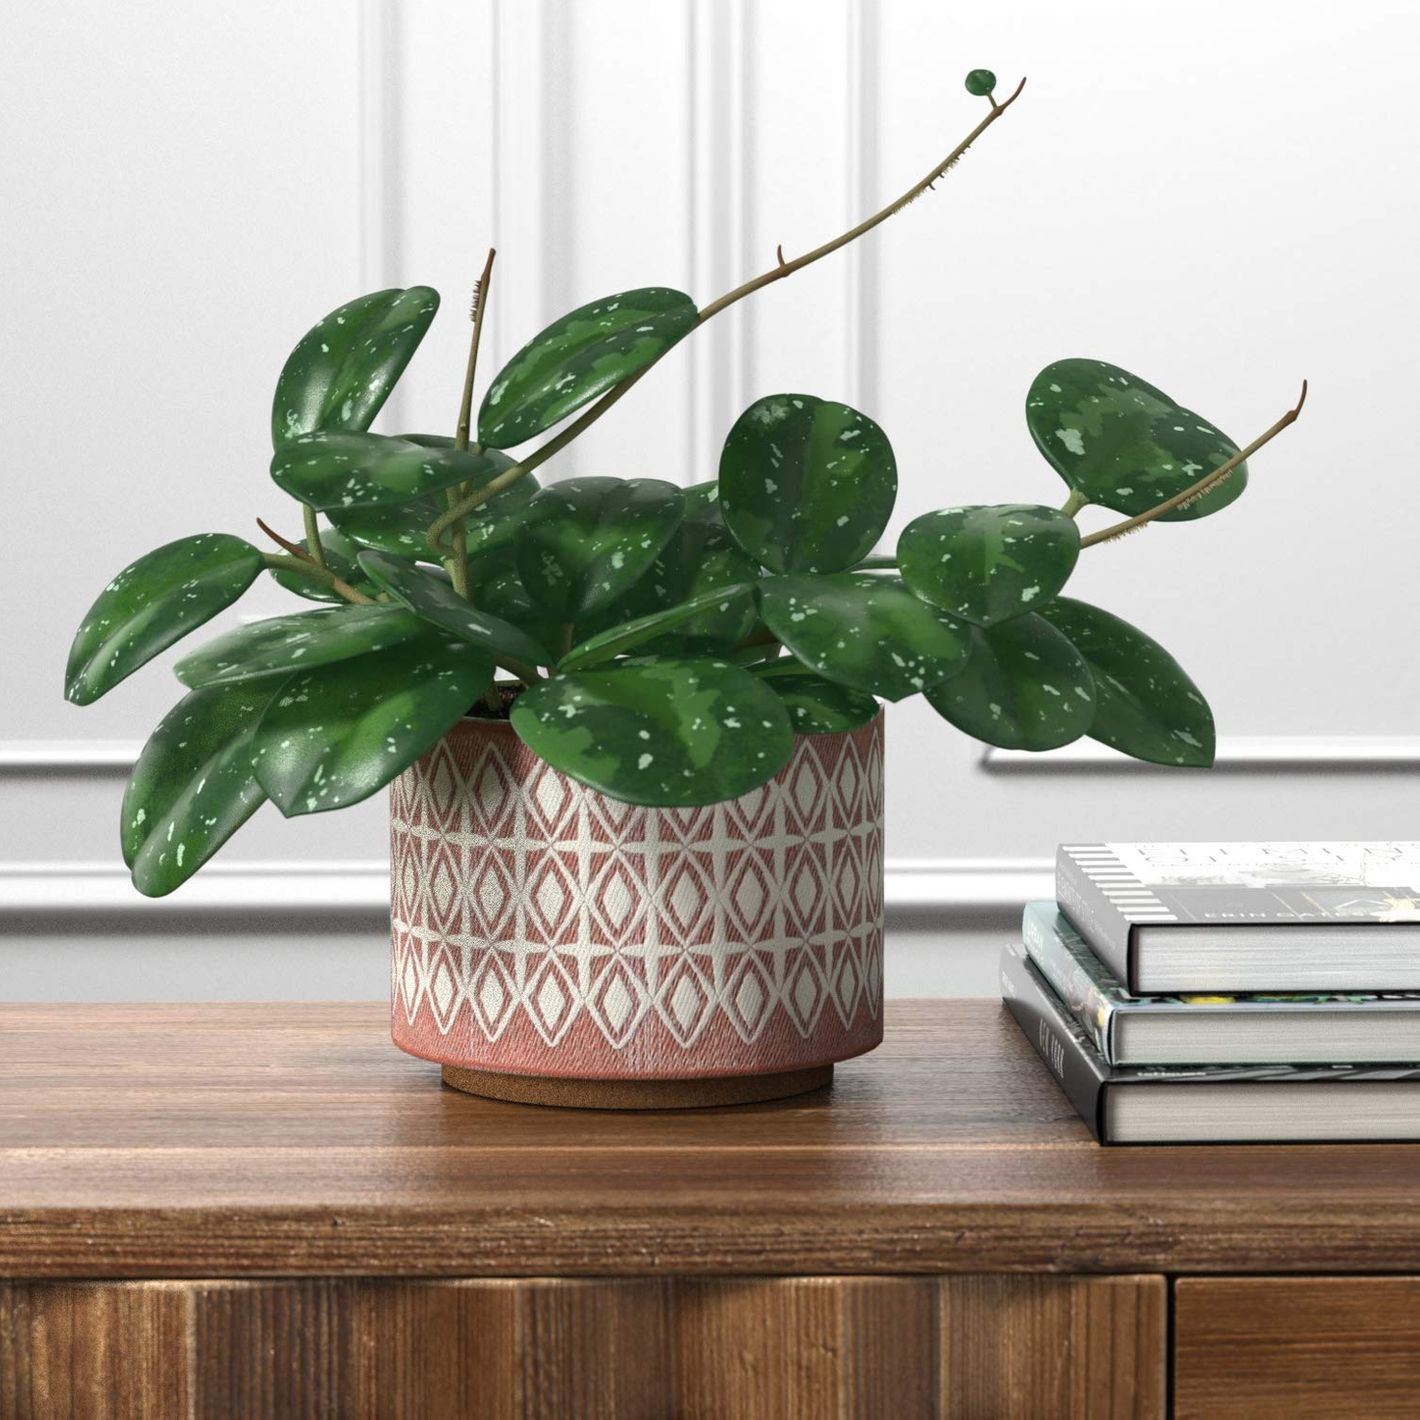 26 Best Pots And Planters On Amazon 2019 The Strategist